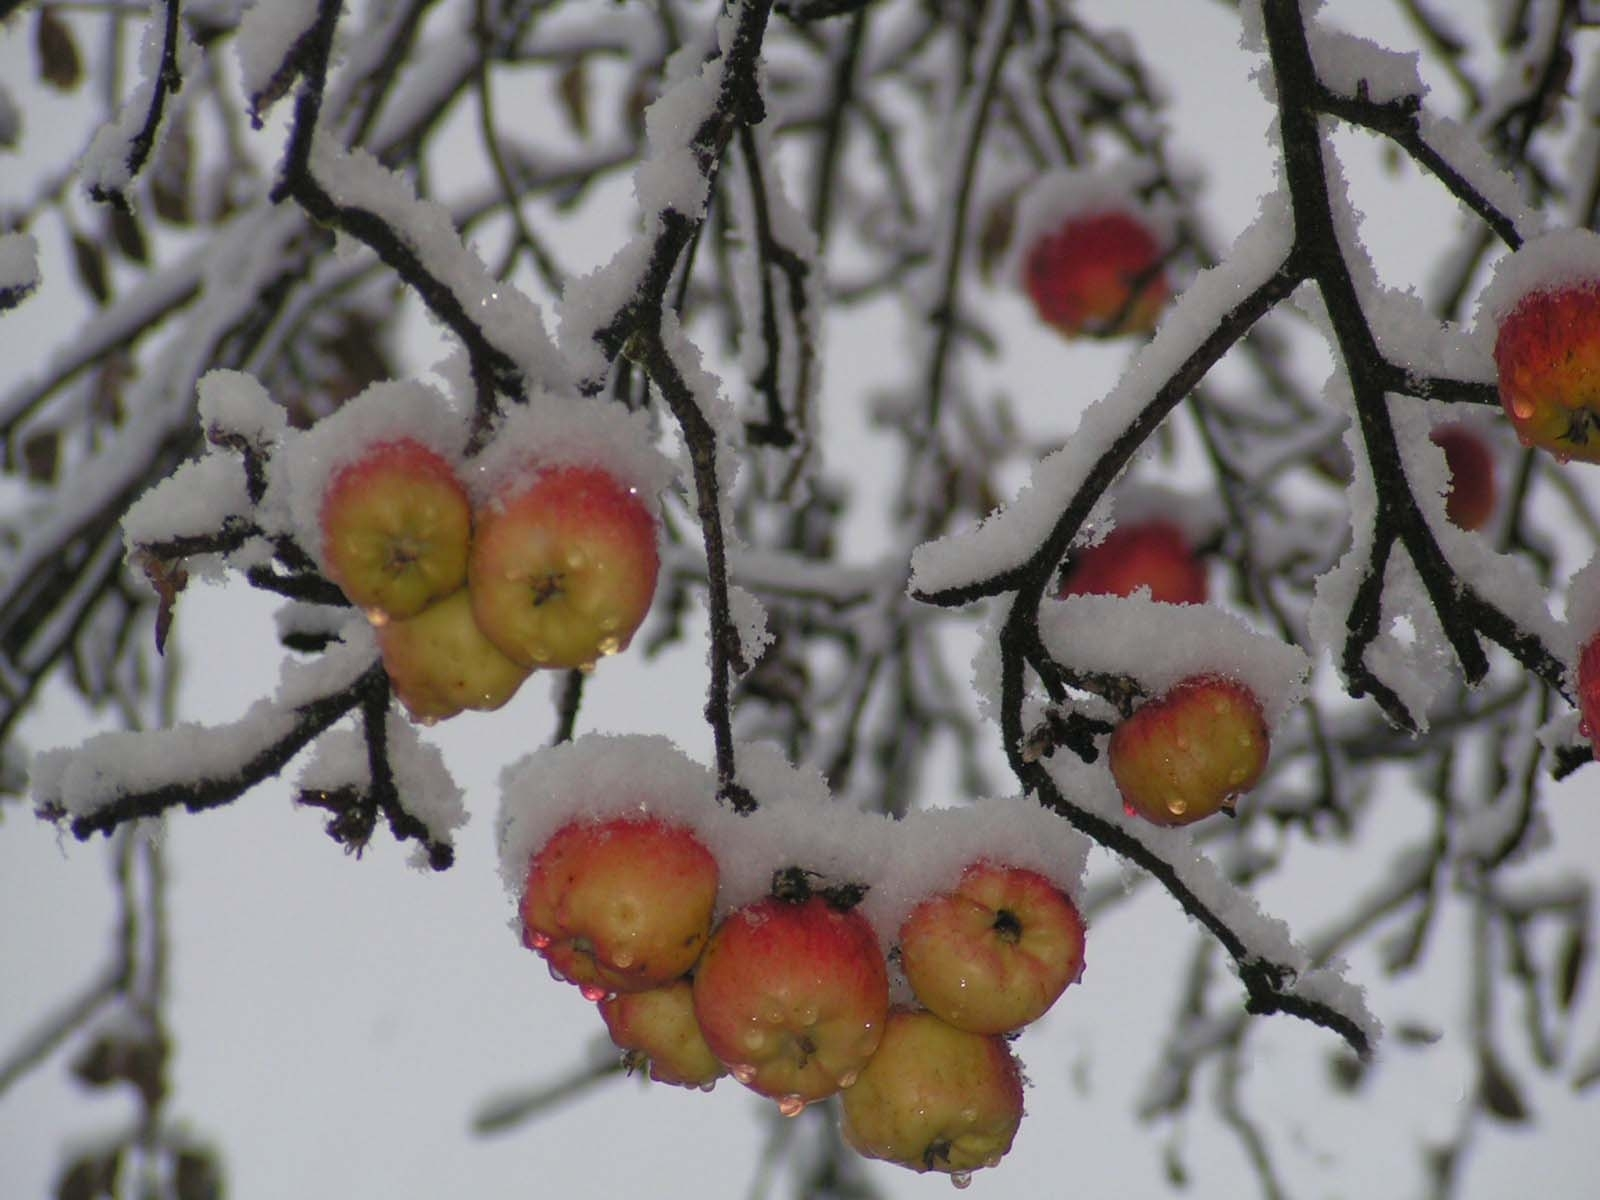 Download mobile wallpaper Plants, Winter, Fruits, Apples, Snow for free.